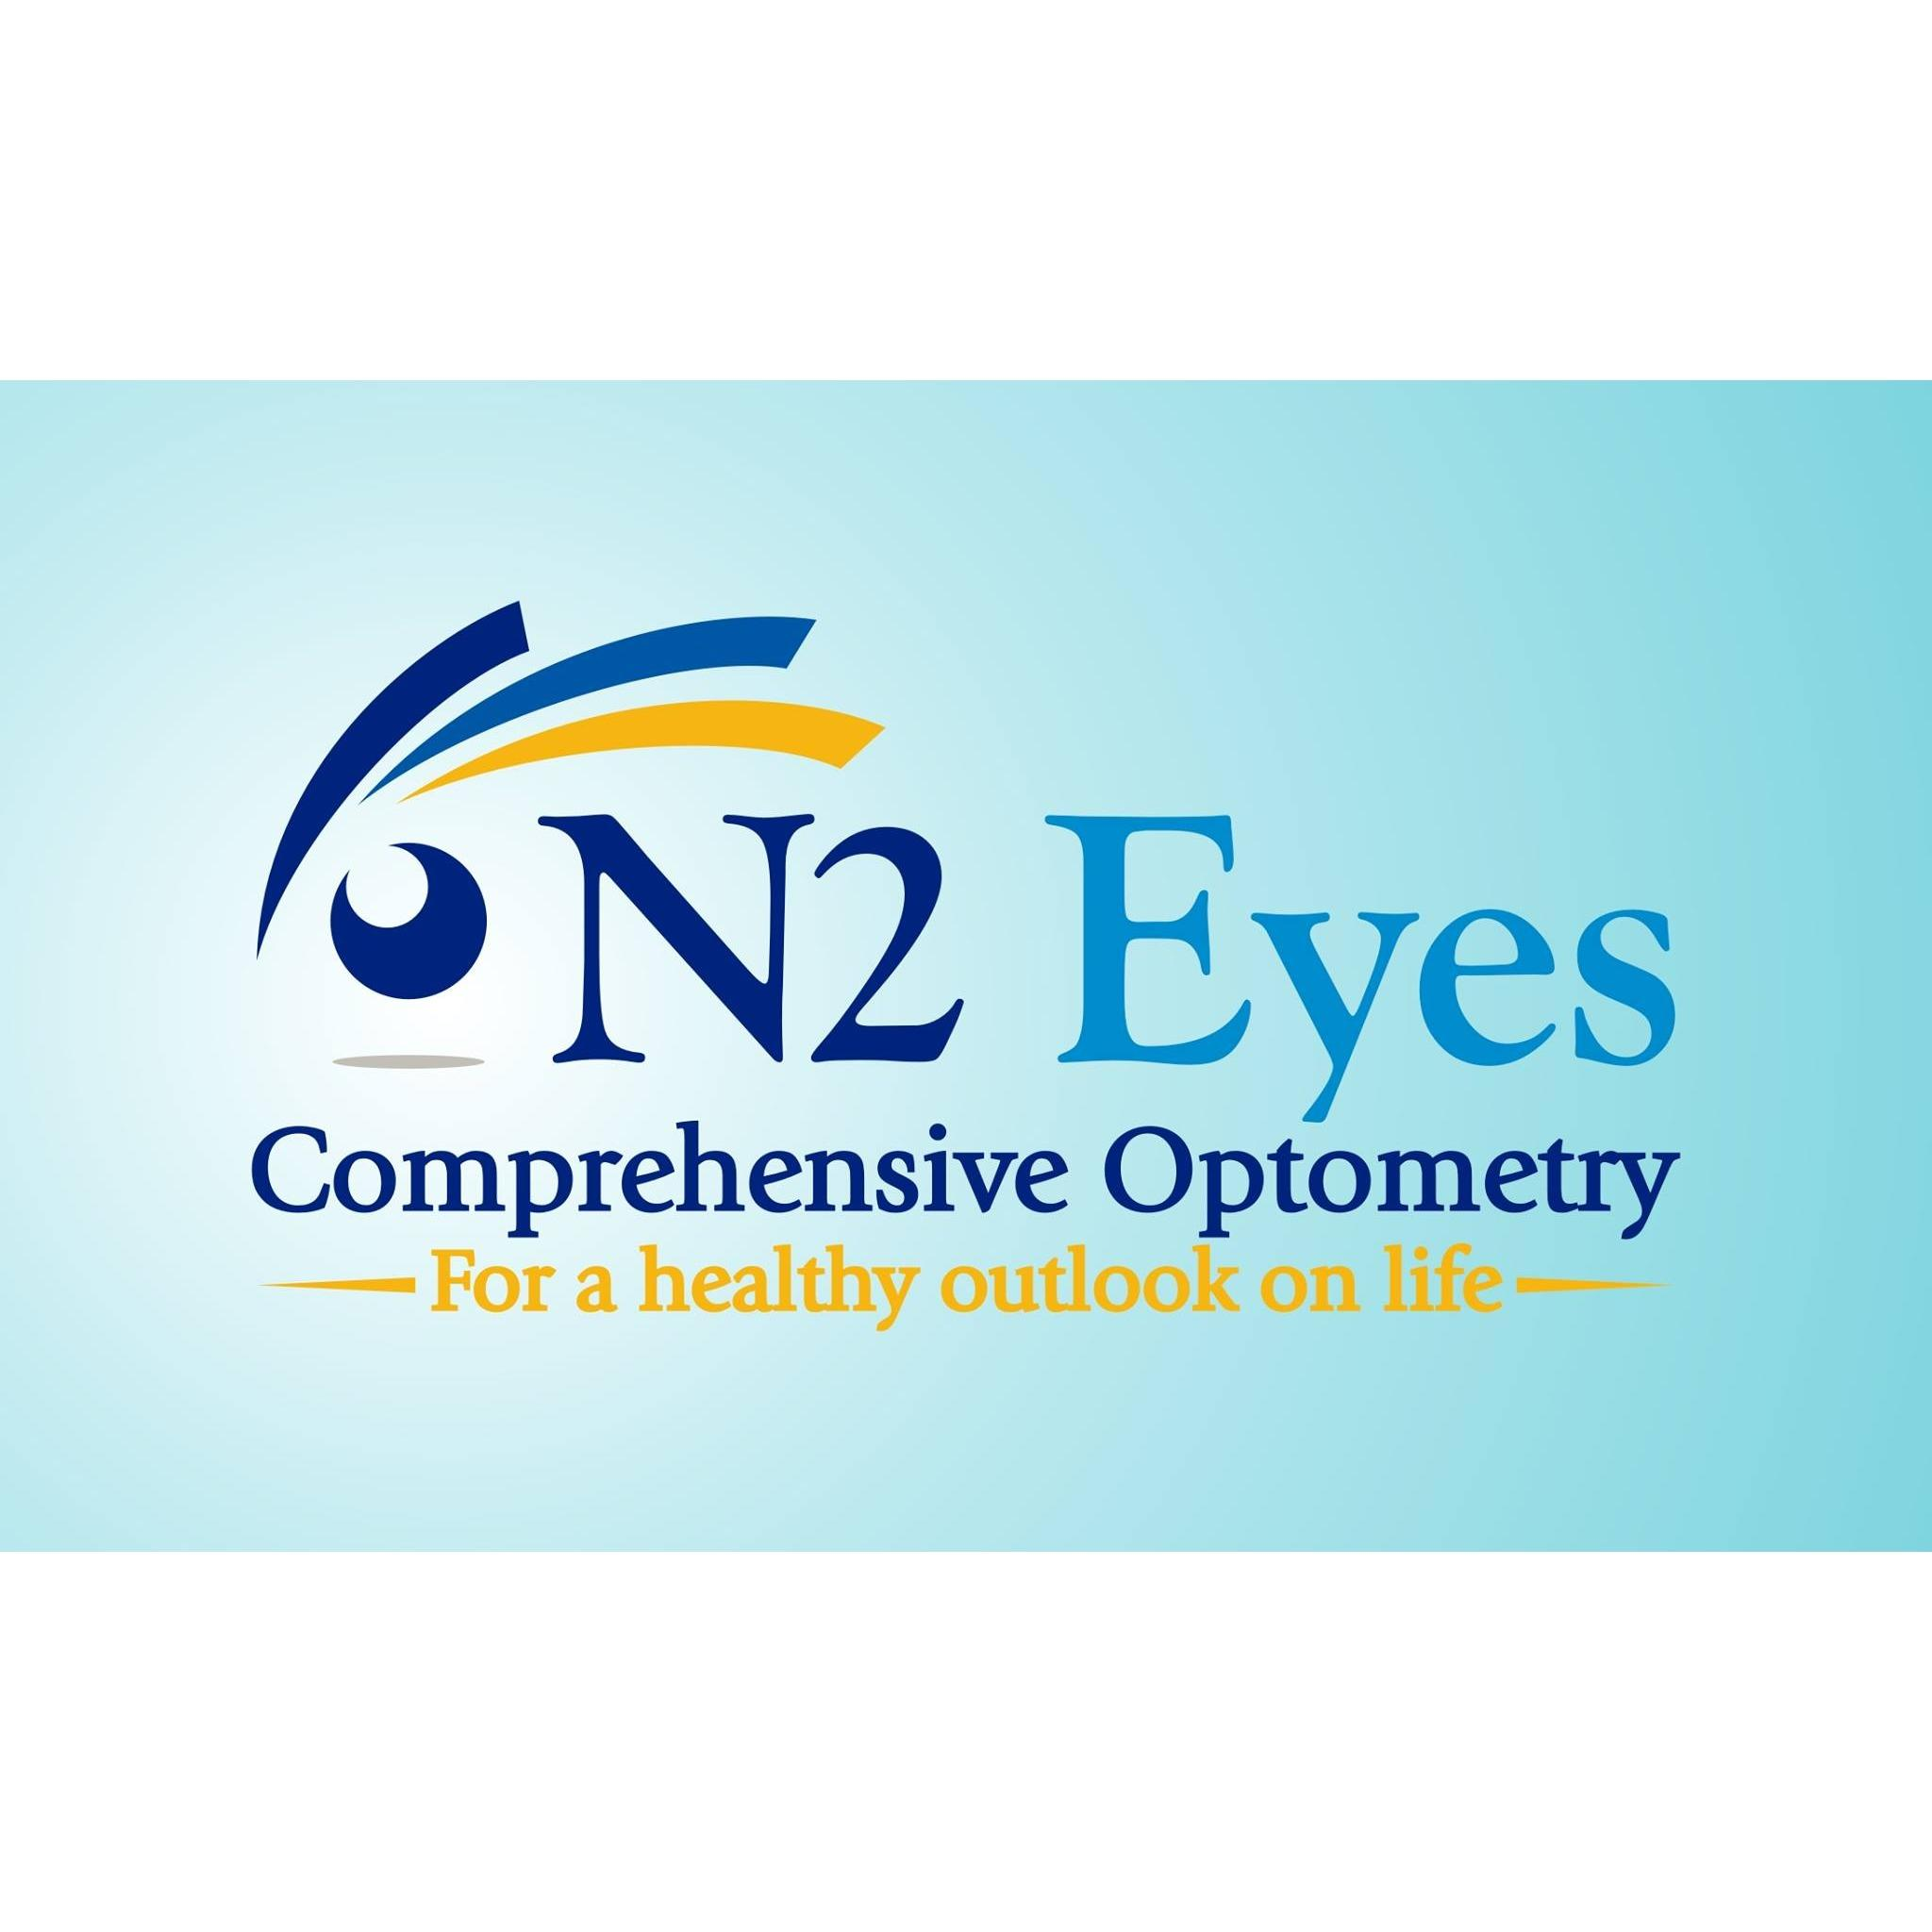 N2 Eyes Comprehensive Optometry image 3